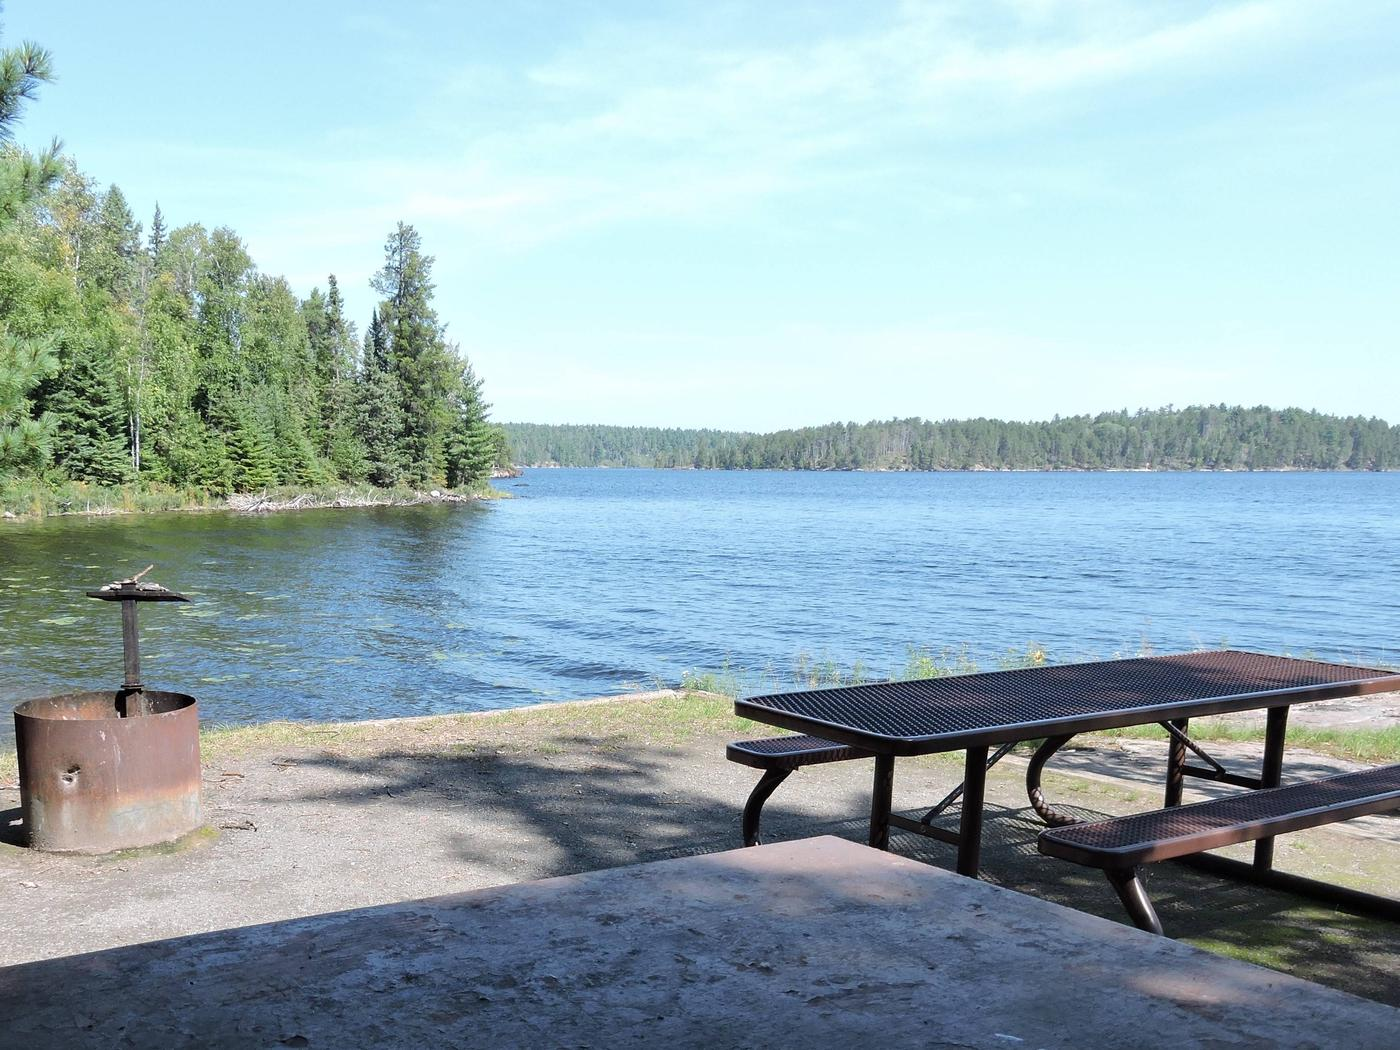 N41 - Voyageurs NarrowsView looking out from campsite